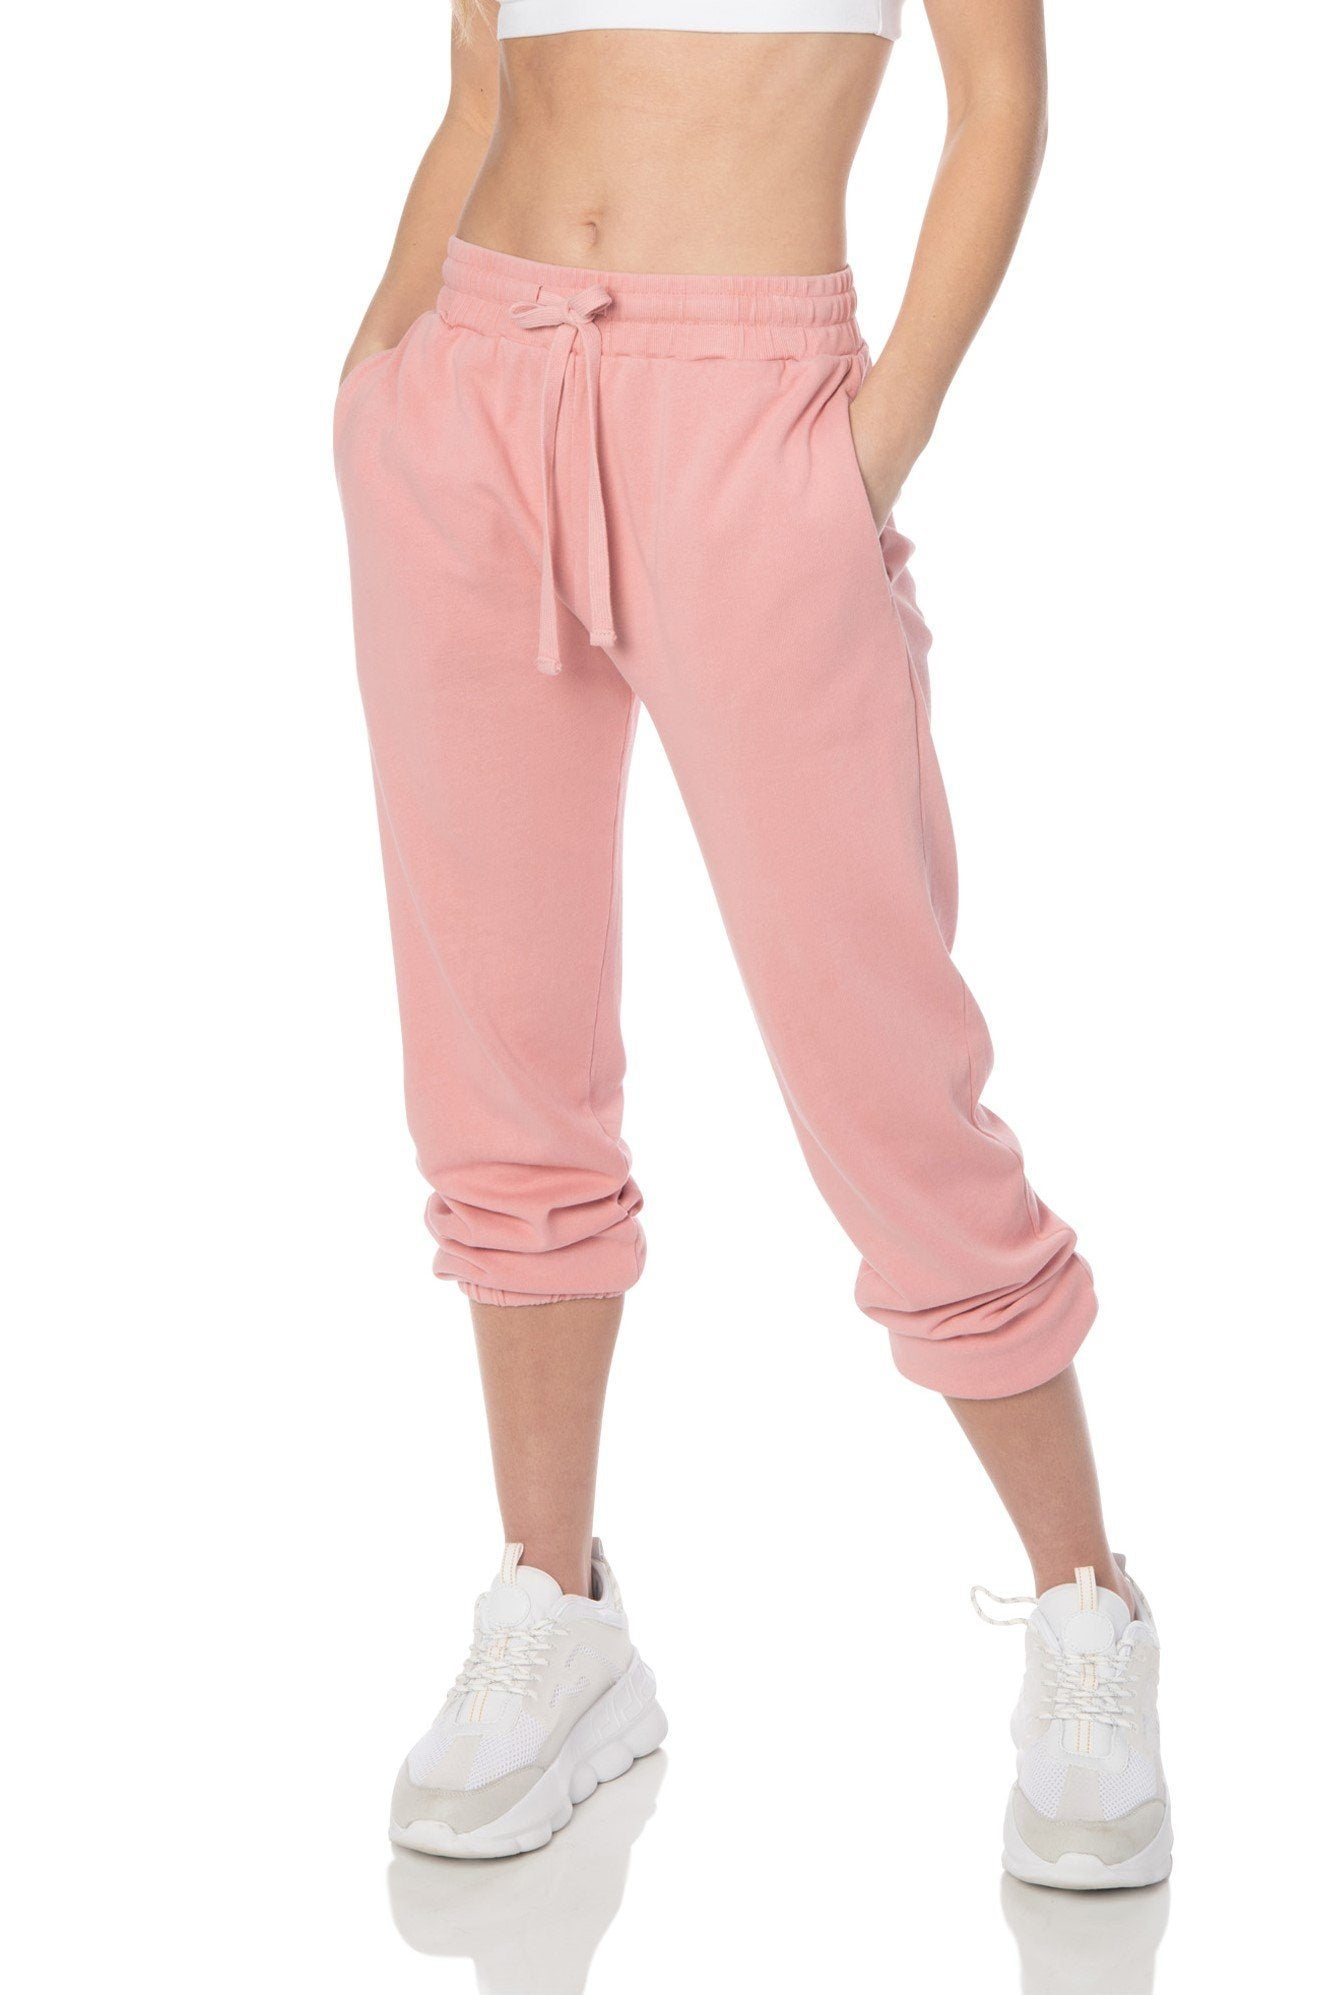 Mineral Washed Pink Relaxed Fit Joggers - Hypeach Lounge Bottoms HYPEACH